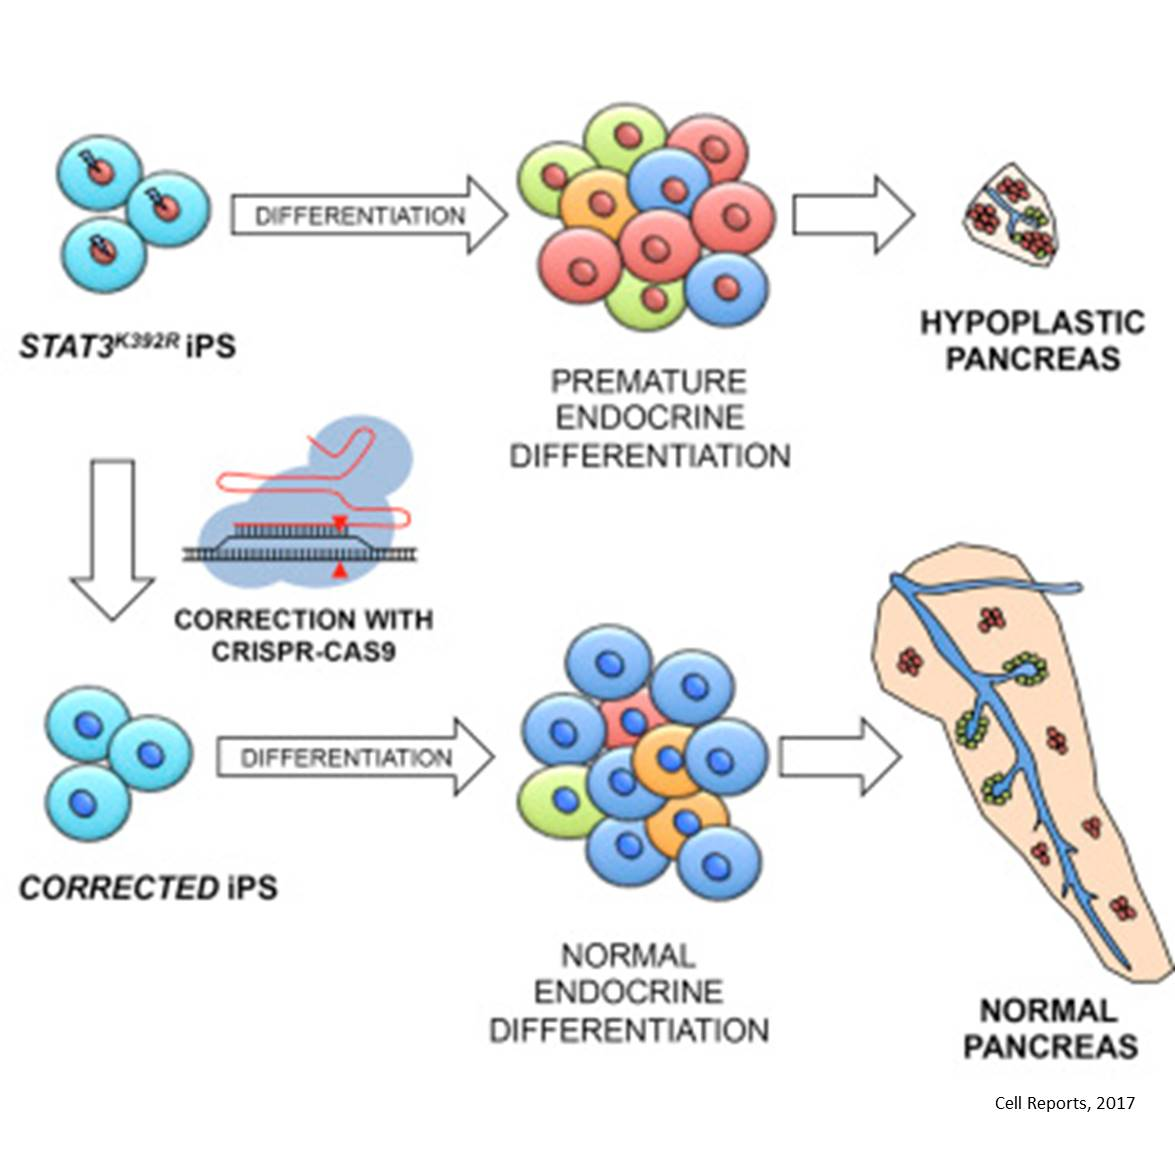 Premature cell differentiation leads to disorders in pancreatic development